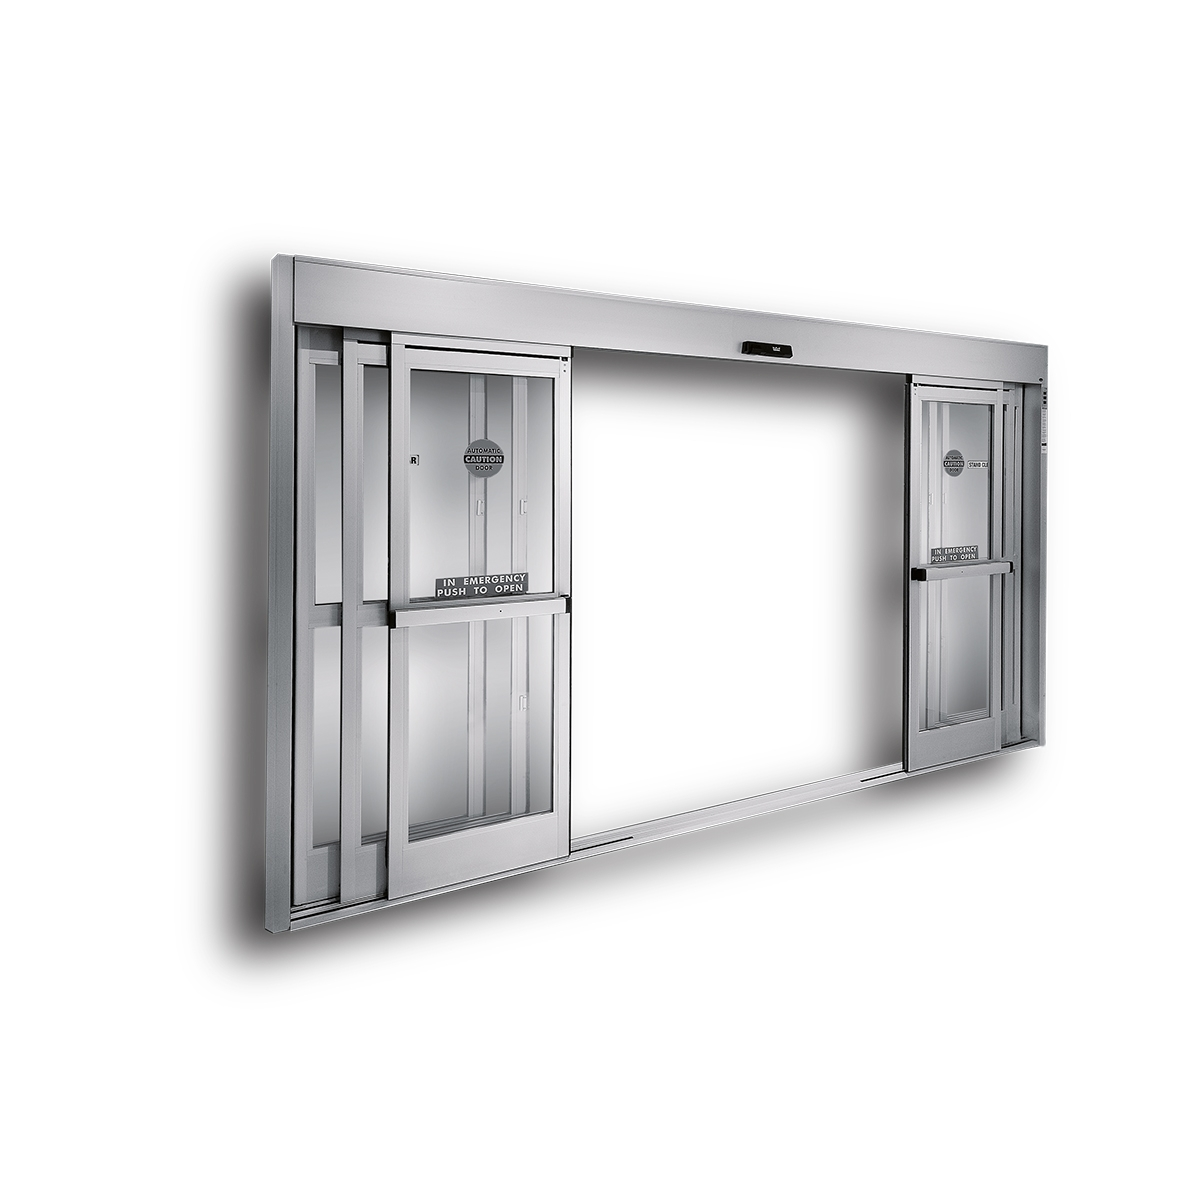 Telescoping Interior Sliding DoorsTelescoping Interior Sliding Doors